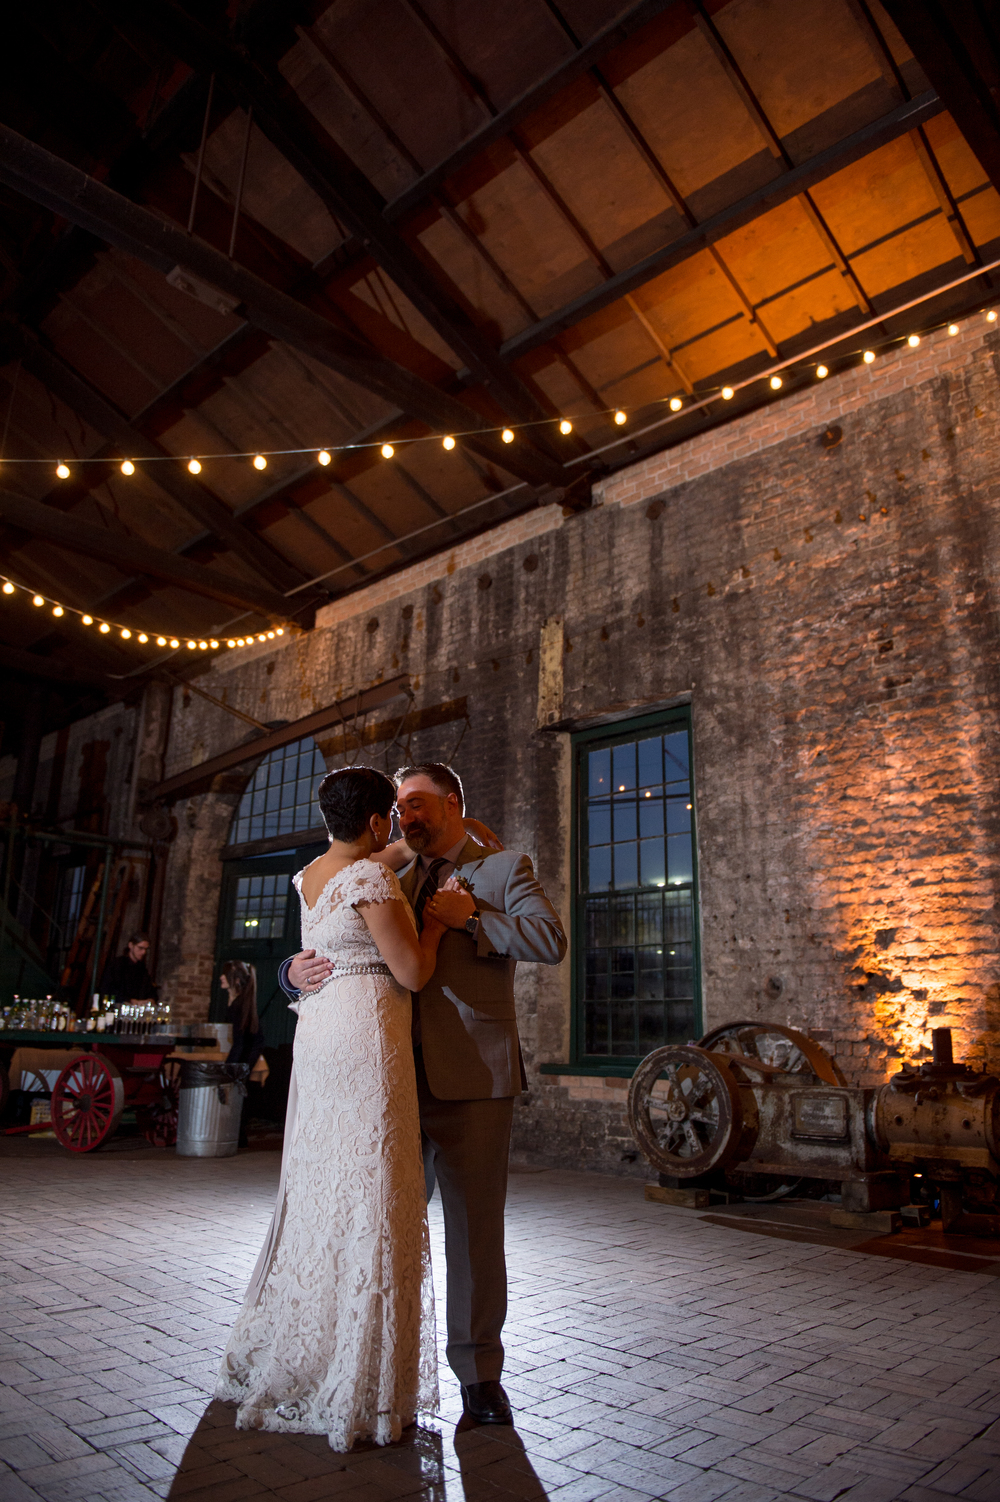 capree-kyle-la-vega-fotografie-roundhouse-railroad-museum-wedding-savannah-wedding-planner-rustic-savannah-wedding-museum-wedding-ivory-and-beau-savannah-bridal-boutique-savannah-weddings-savannah-event-designer-savannah-florist-21.jpg